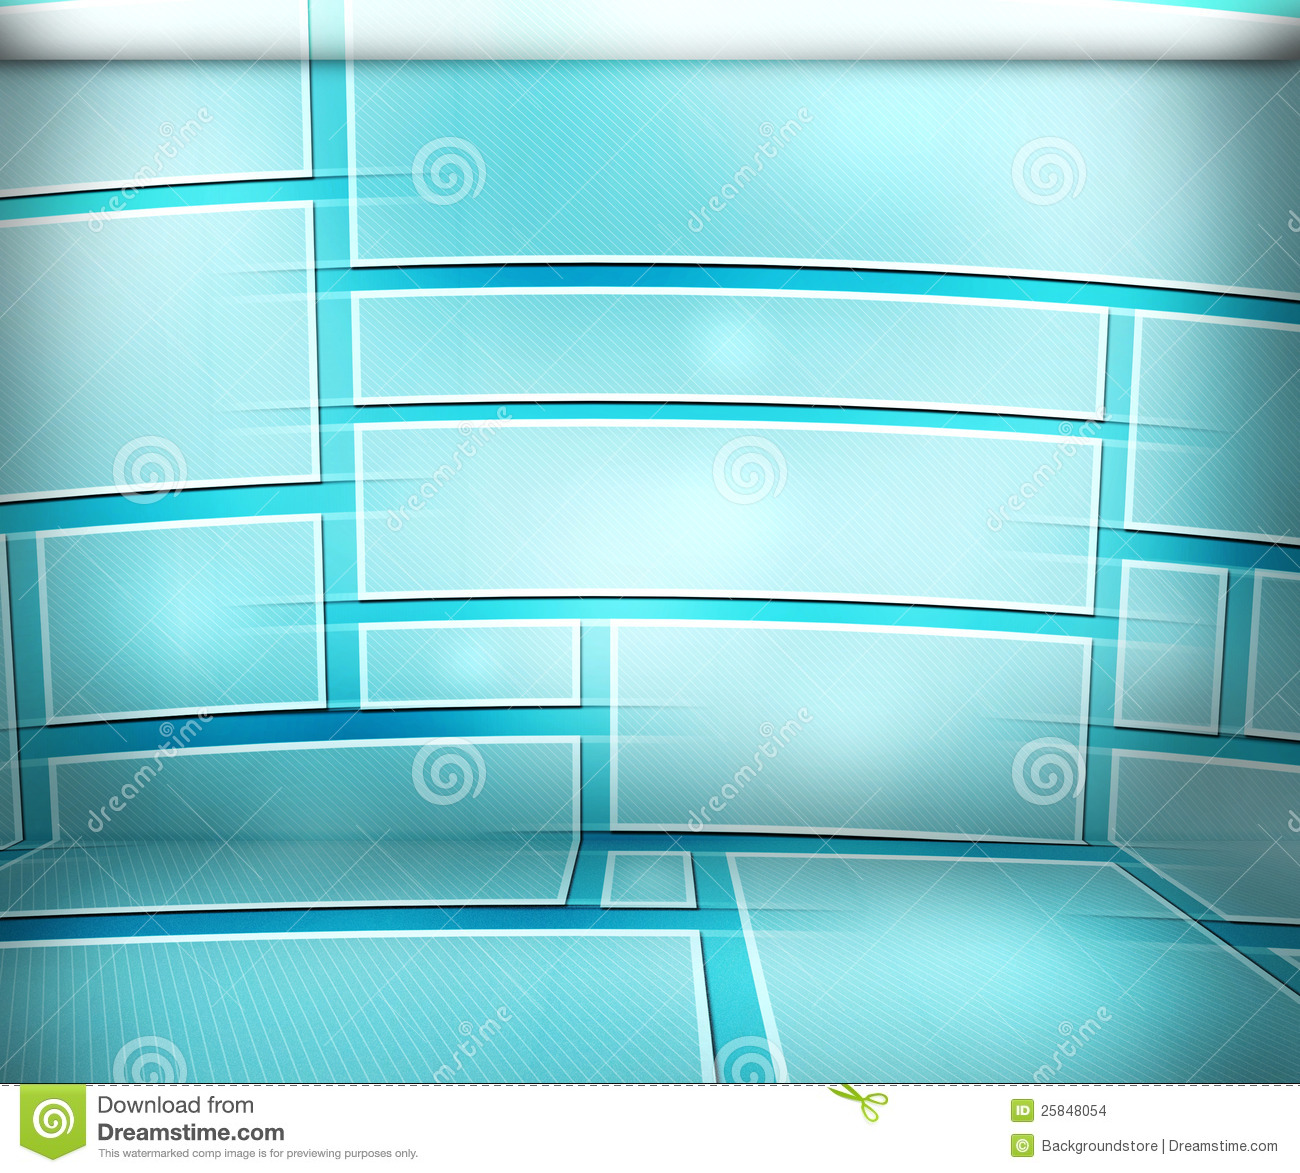 Room background viewing gallery